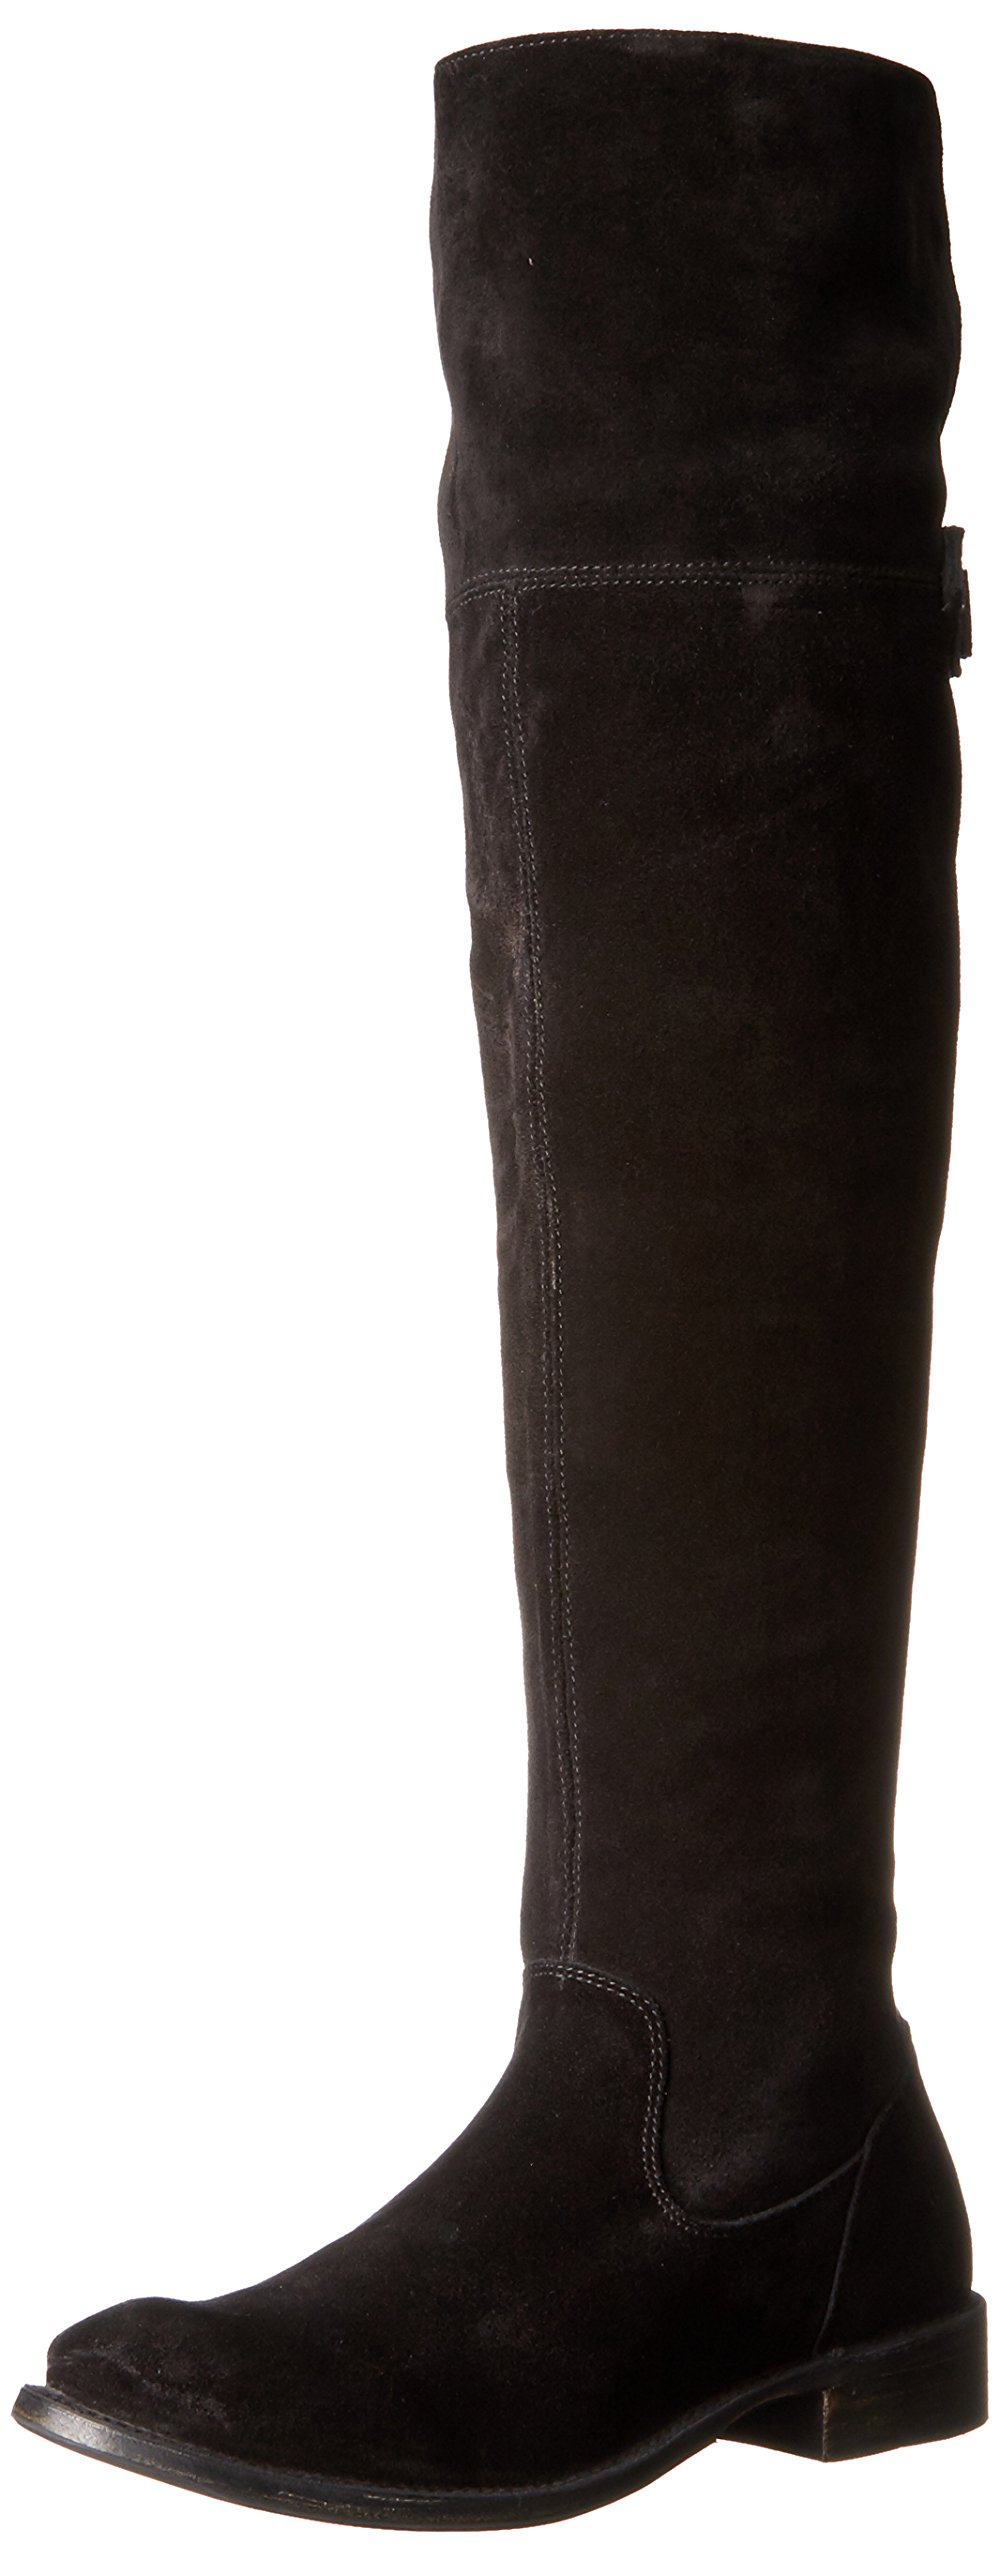 FRYE Women's Shirley OTK Slouch Boot, Black, 5.5 M US by FRYE